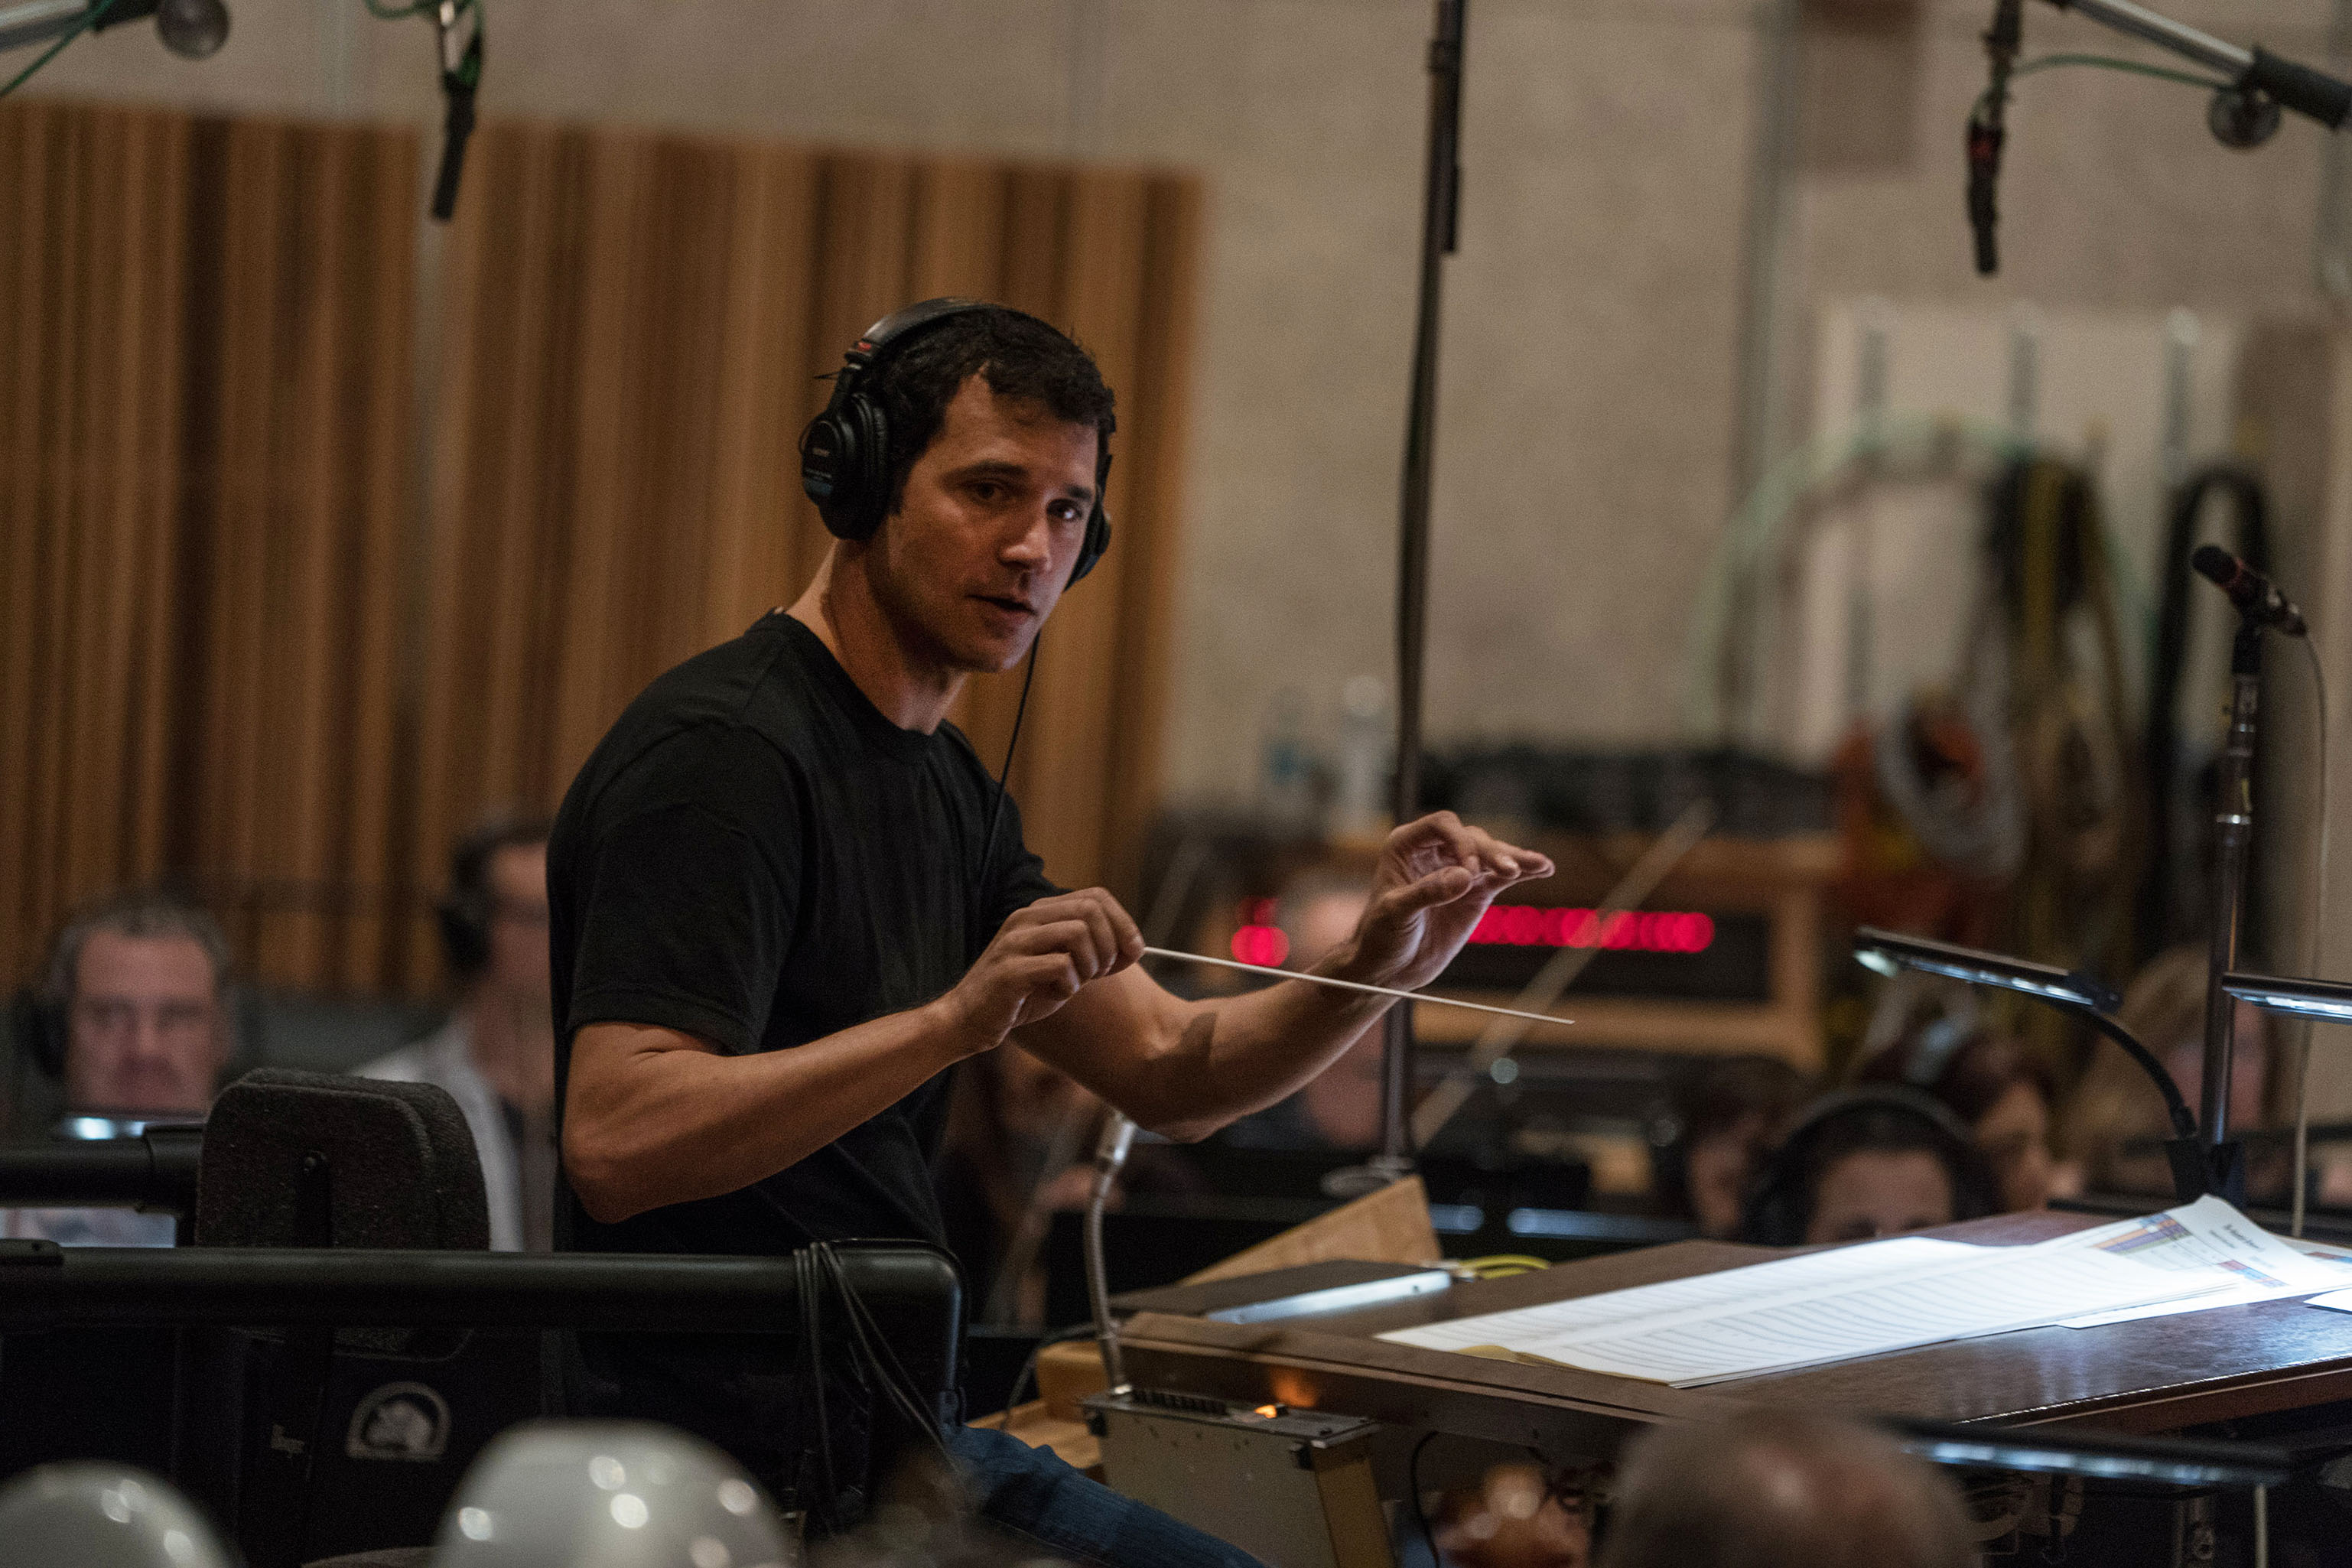 Composer Ramin Djawadi conducting the scoring session for THE MOUNTAIN BETWEEN US.